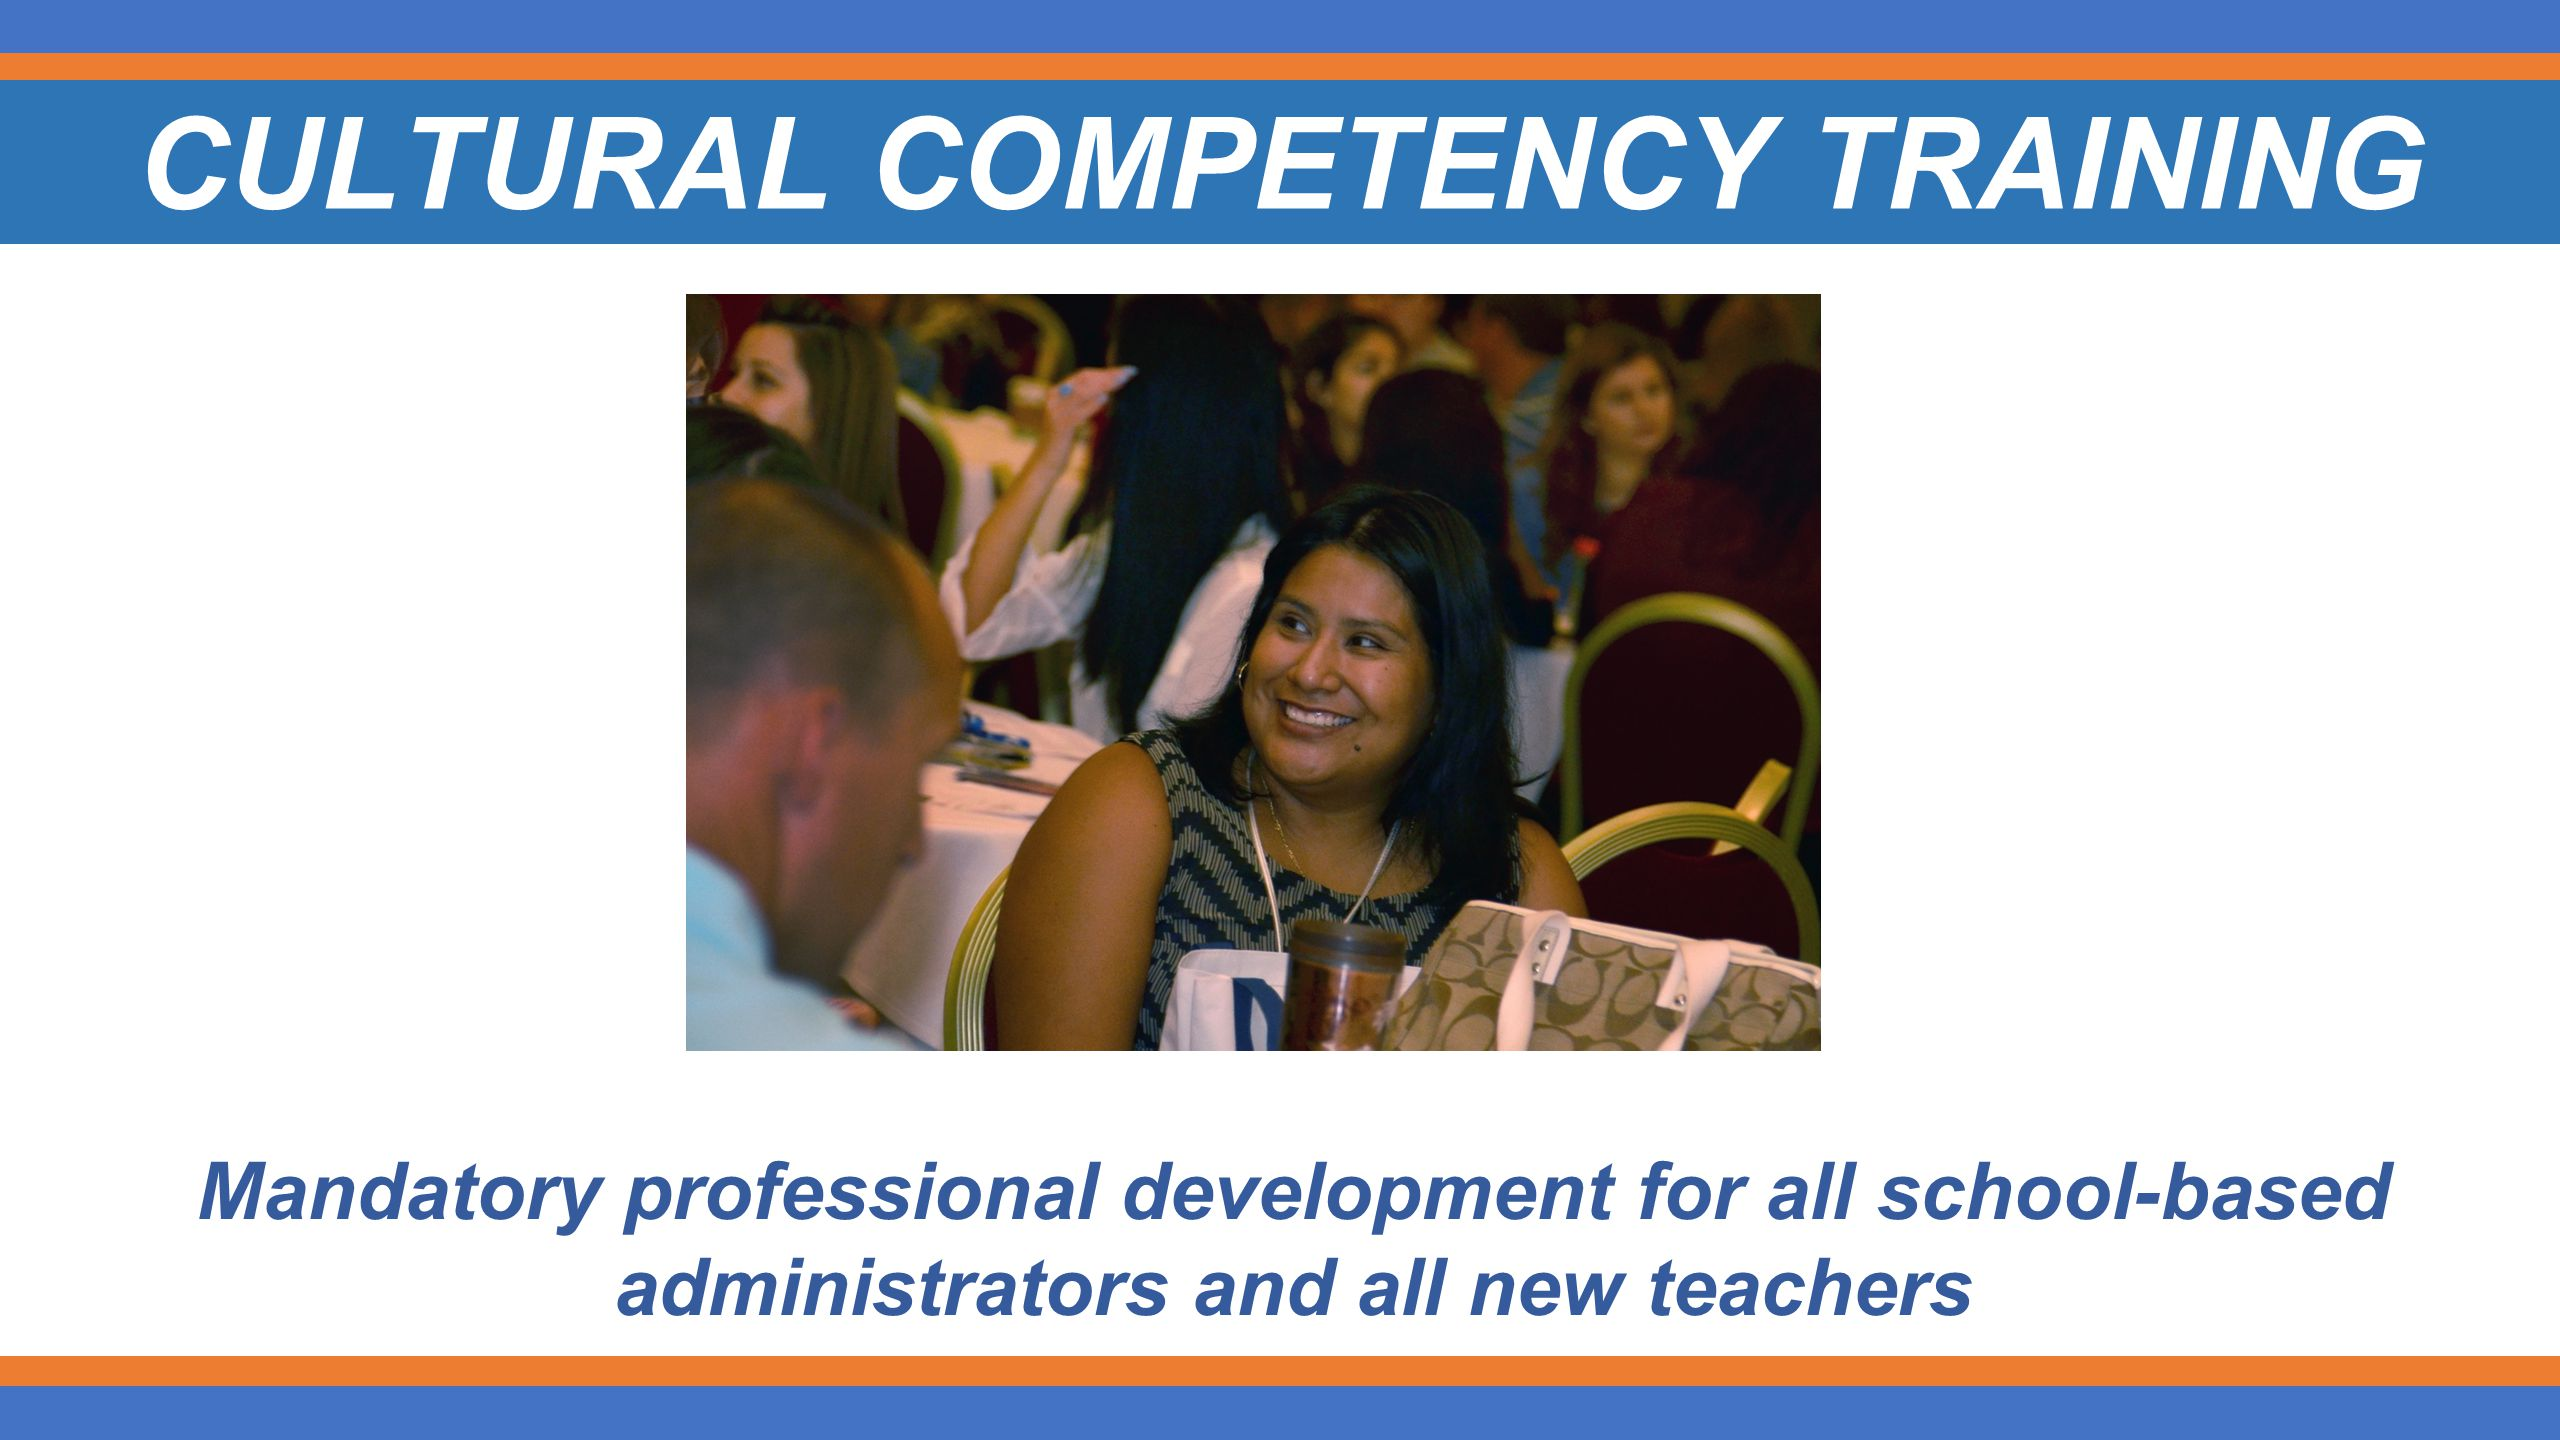 CULTURAL COMPETENCY TRAINING Mandatory professional development for all school-based administrators and all new teachers